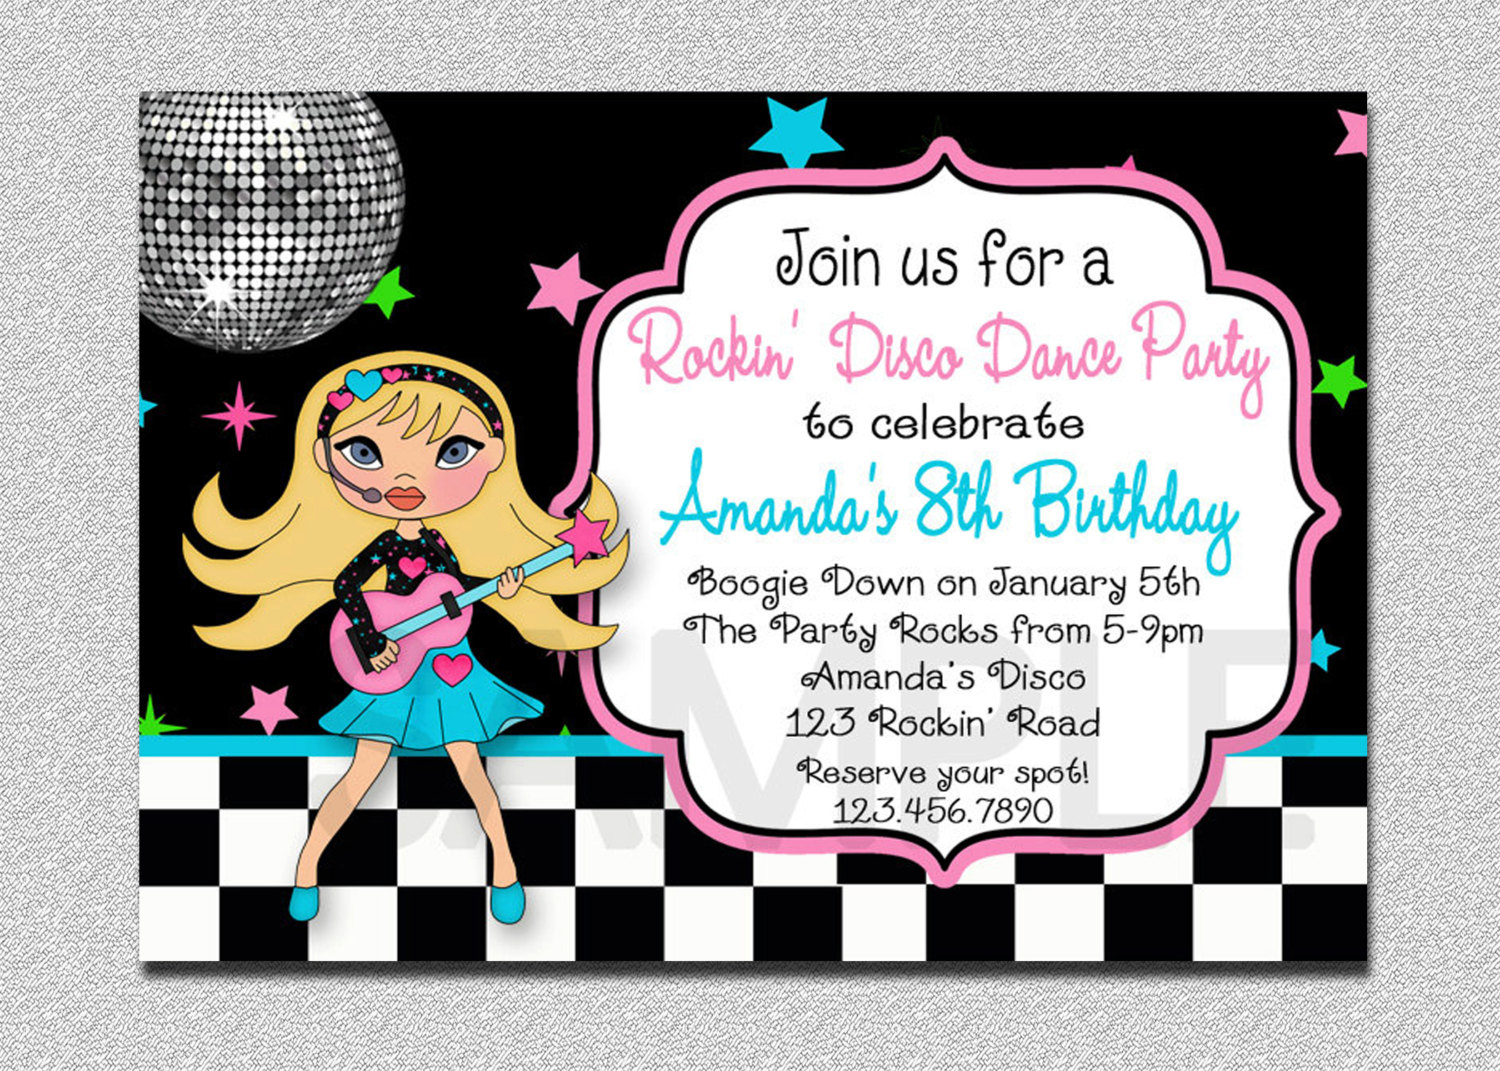 Il Xn Pw Cute Free Printable Karaoke Party Invitations - Free Printable Karaoke Party Invitations